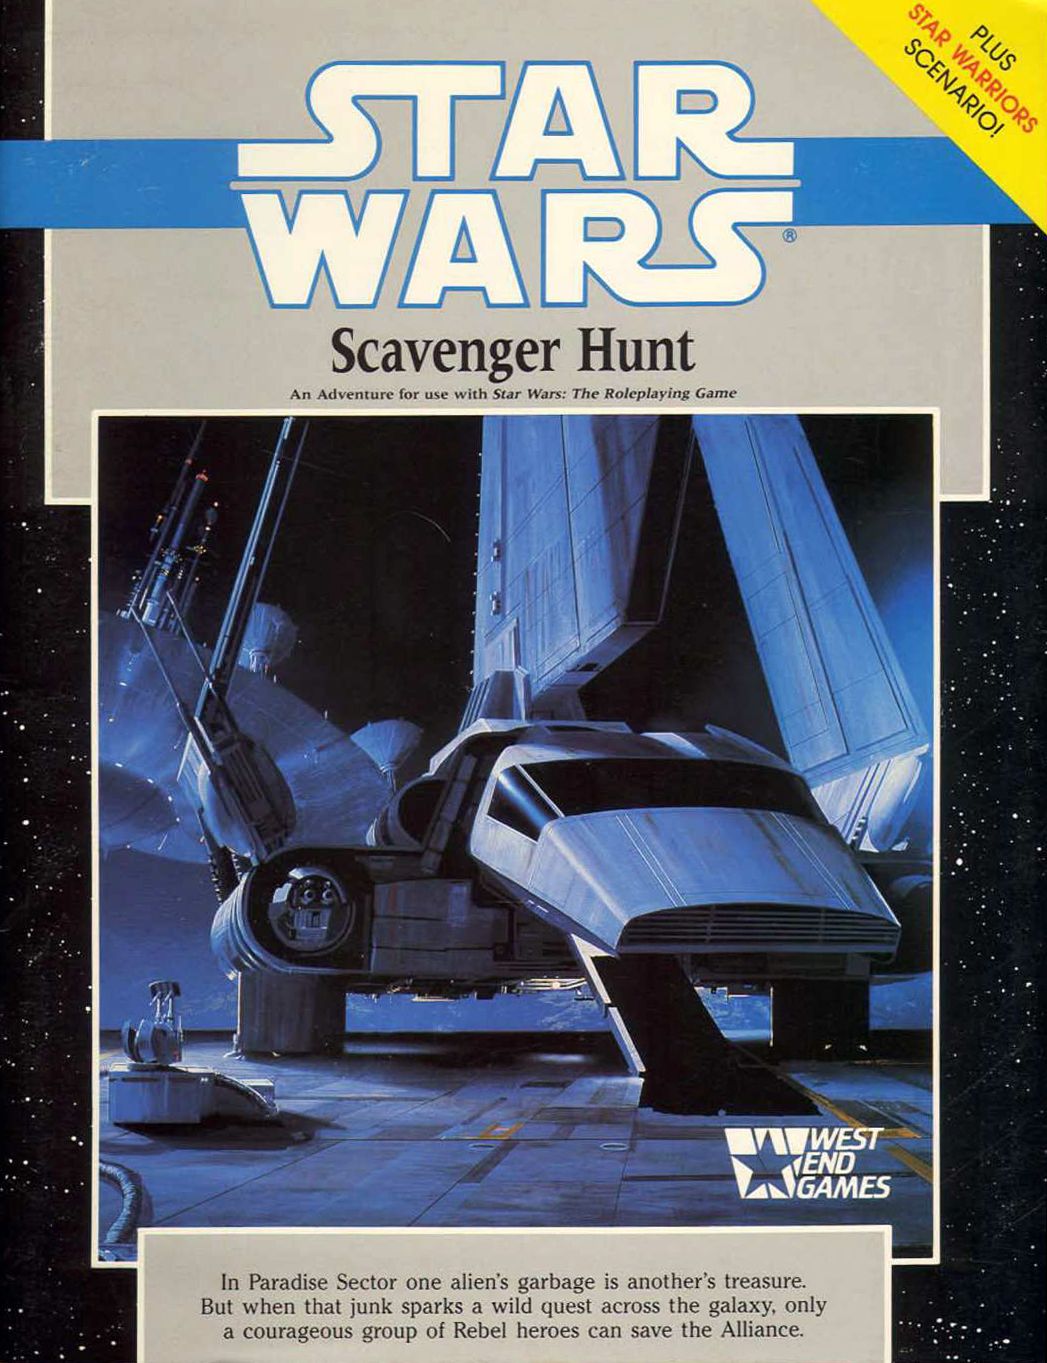 Star Wars: Scavenger Hunt